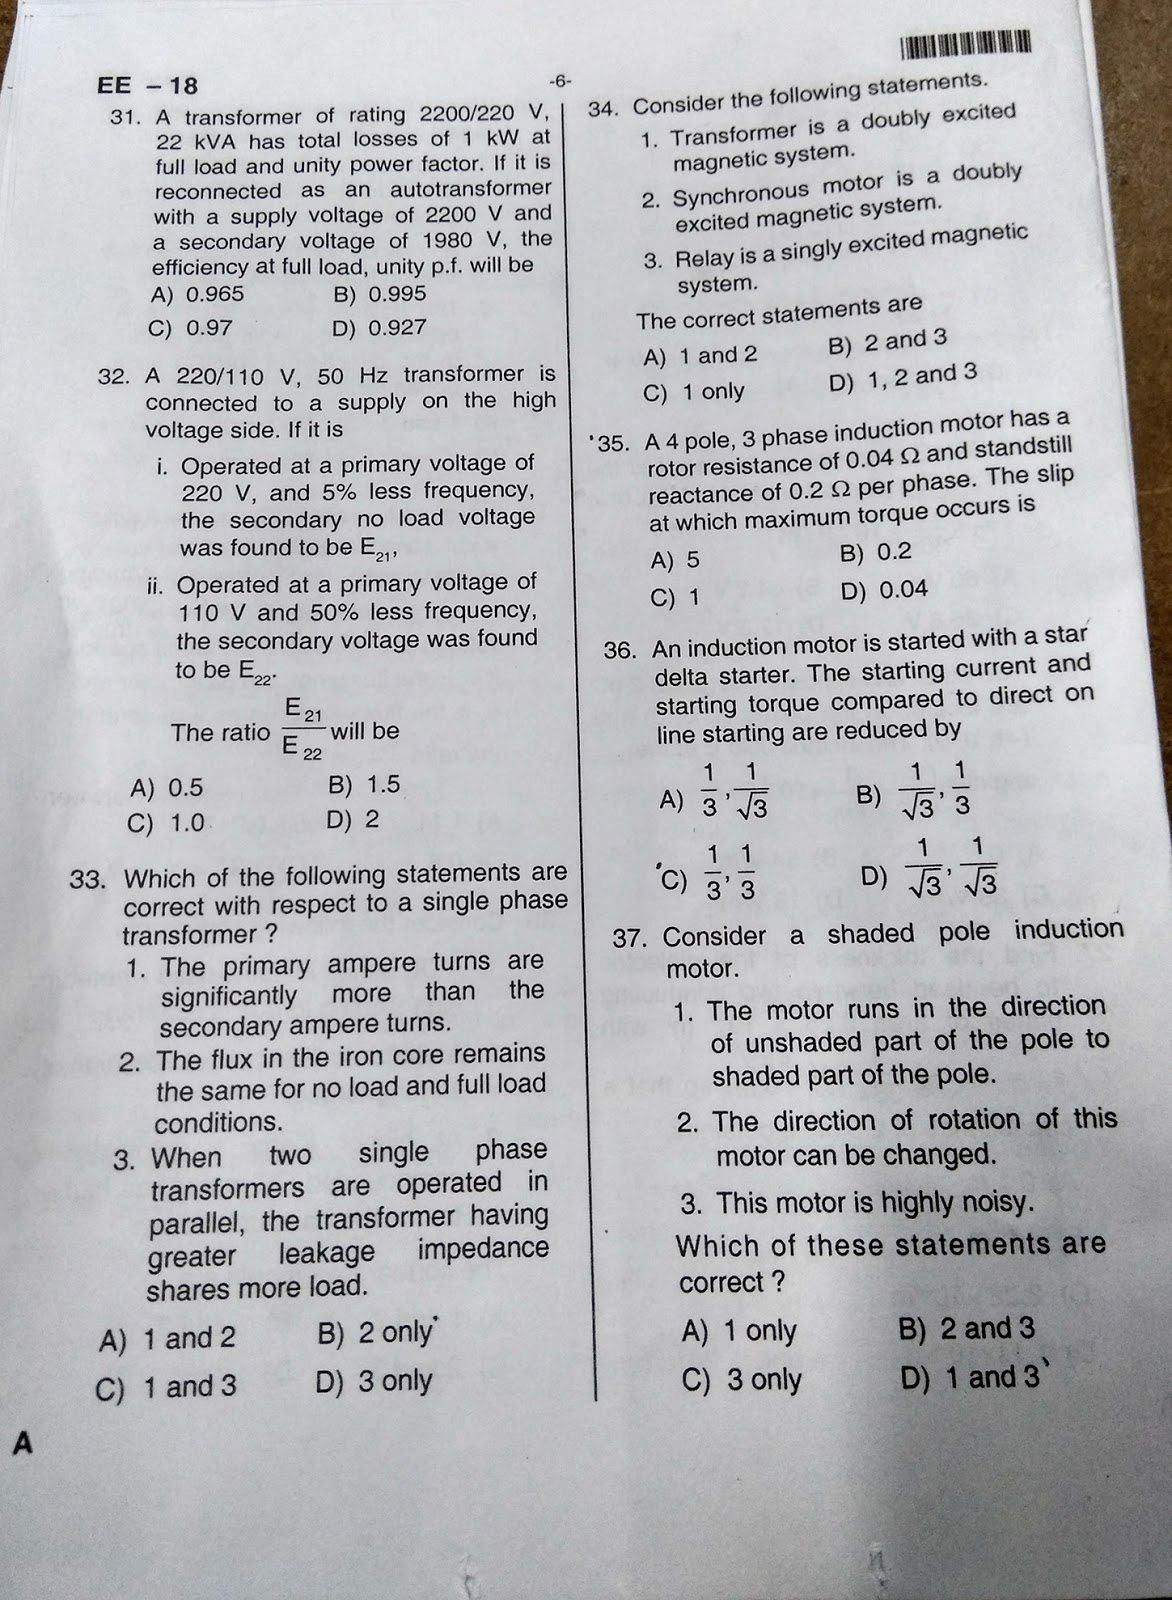 SPDCL AE Exam Question paper 25-3-2018 - TECH DOSTI